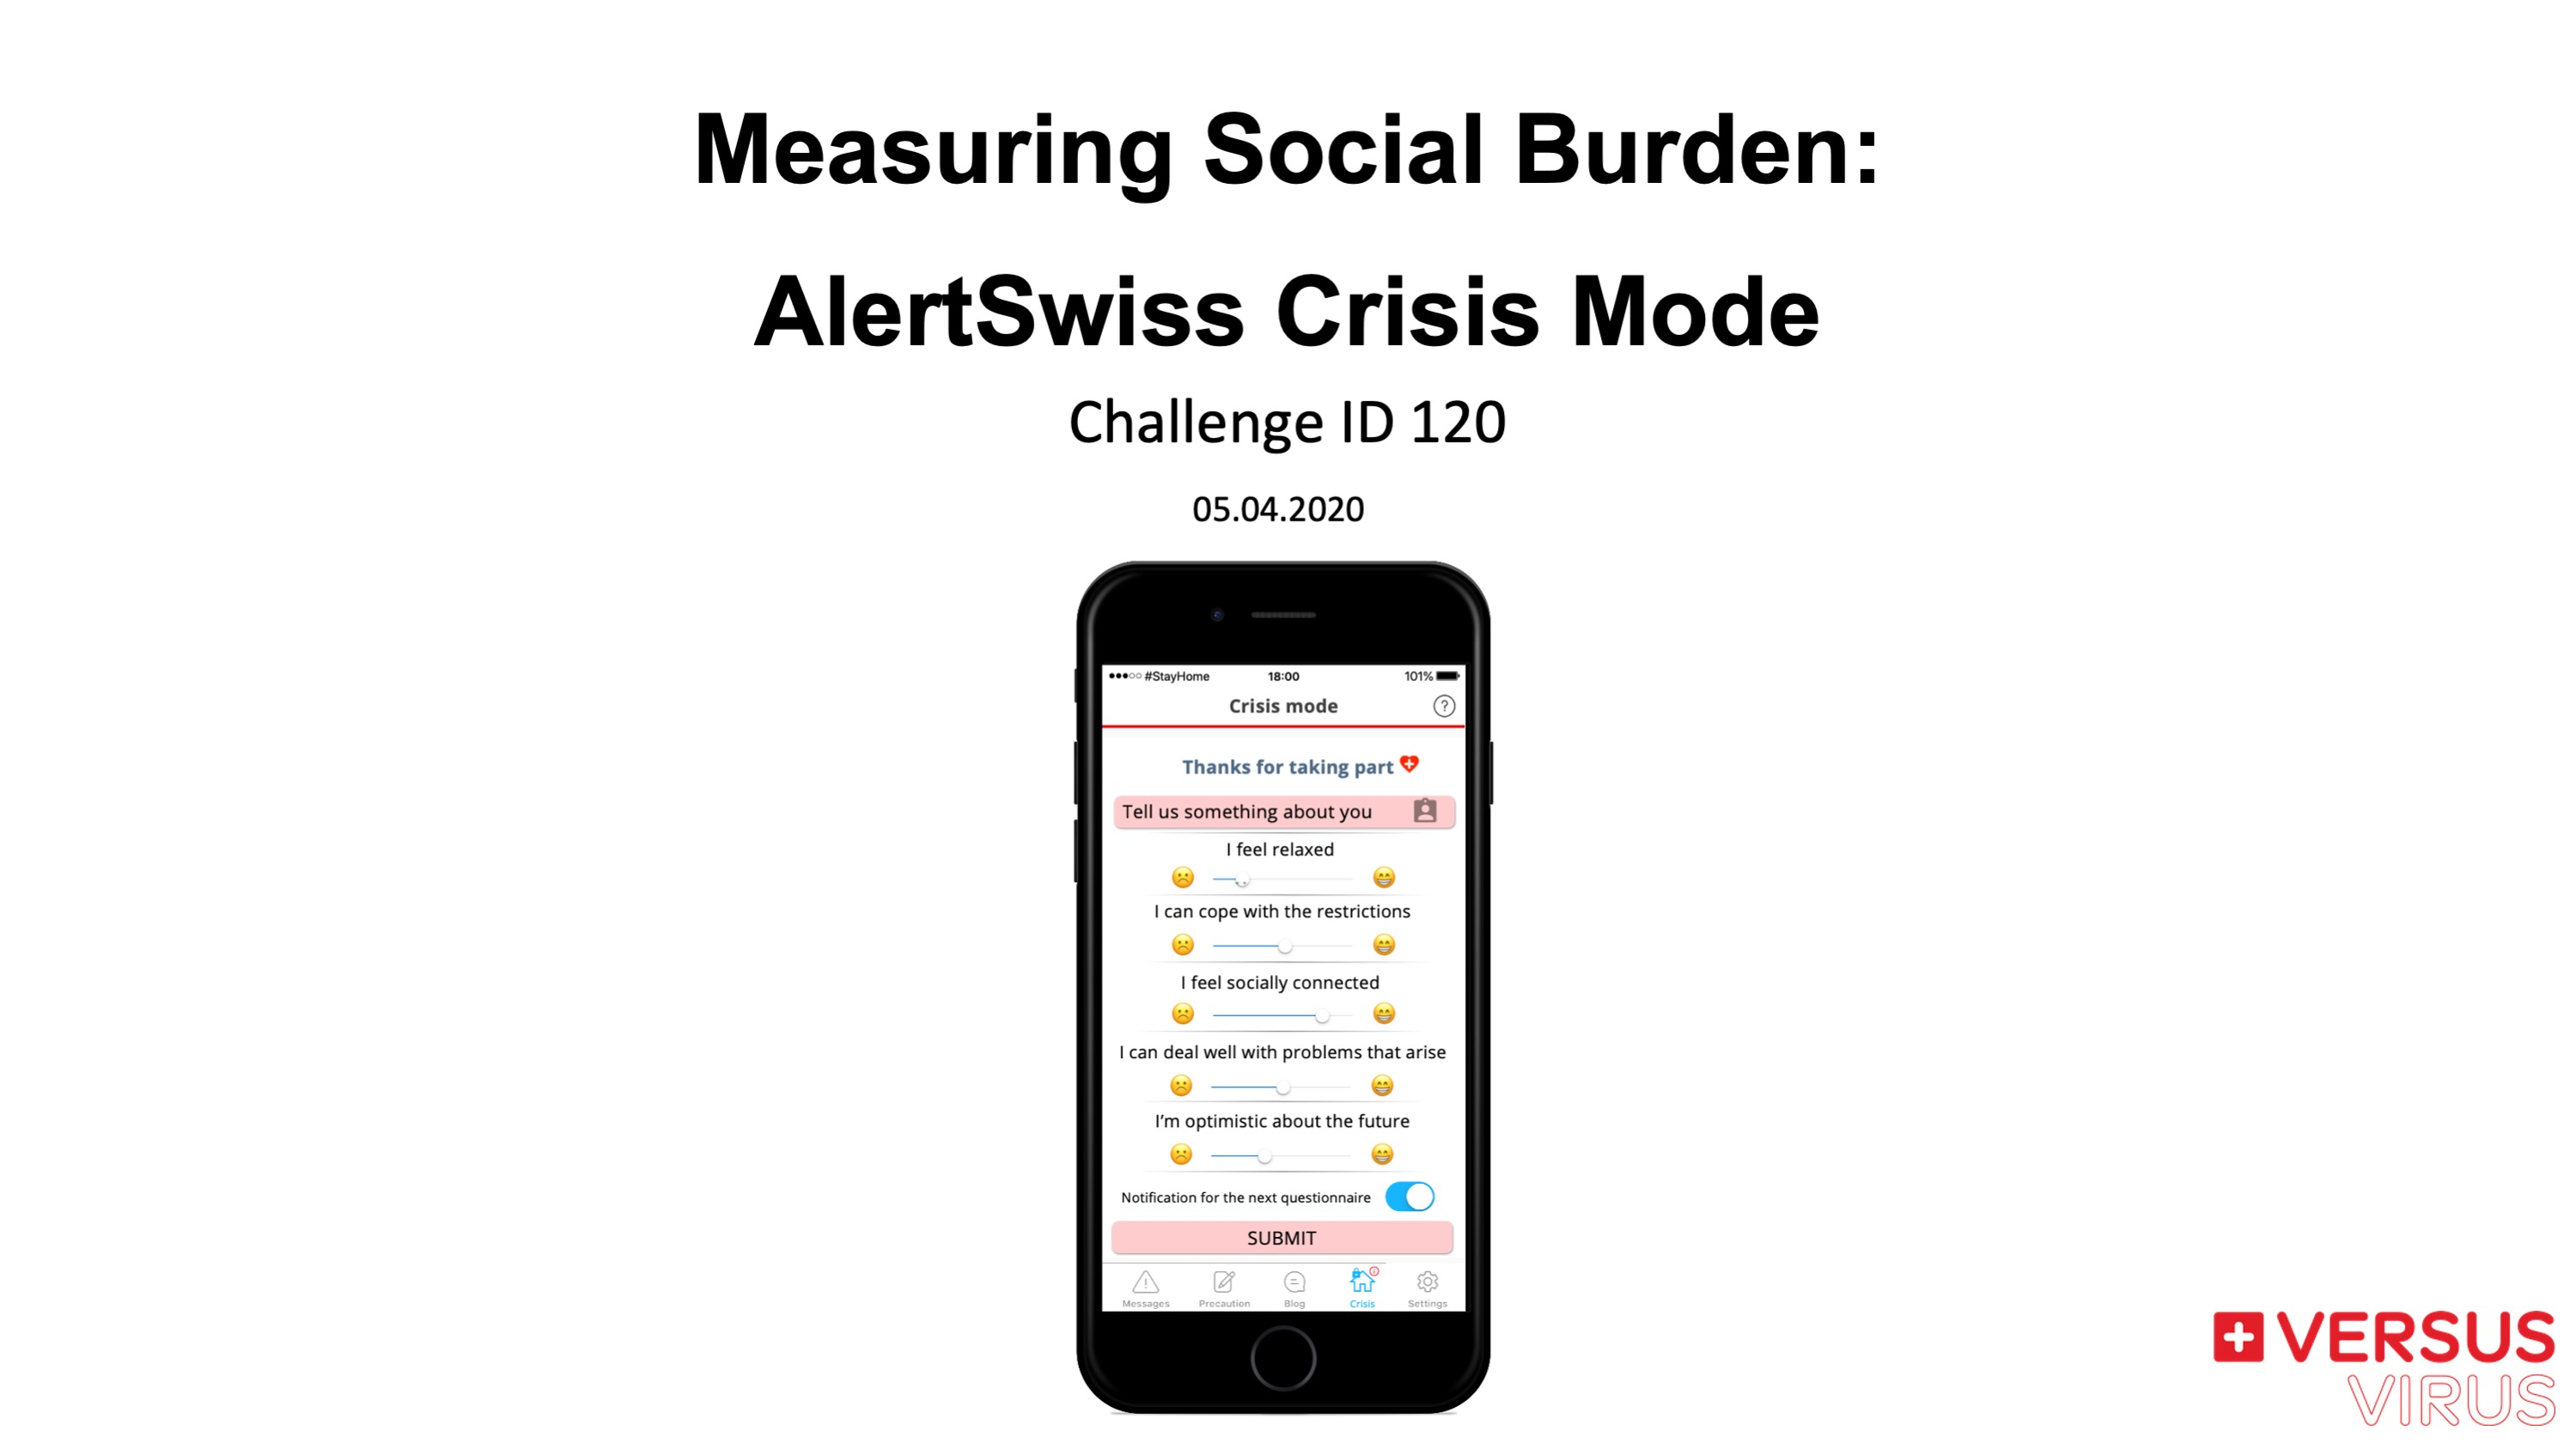 Measuring Social Burden: AlertSwiss Crisis Mode